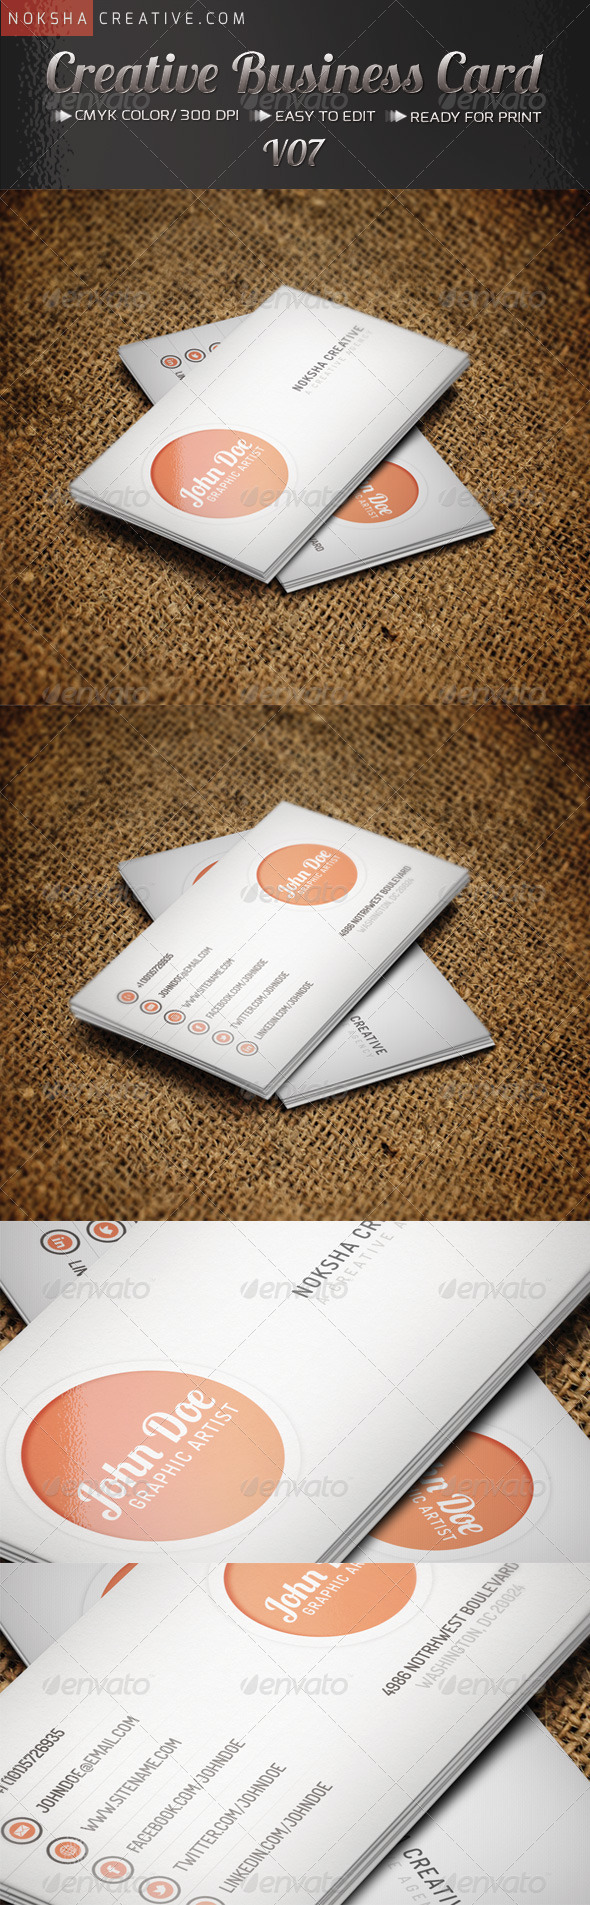 Creative Business Card V07 - Creative Business Cards